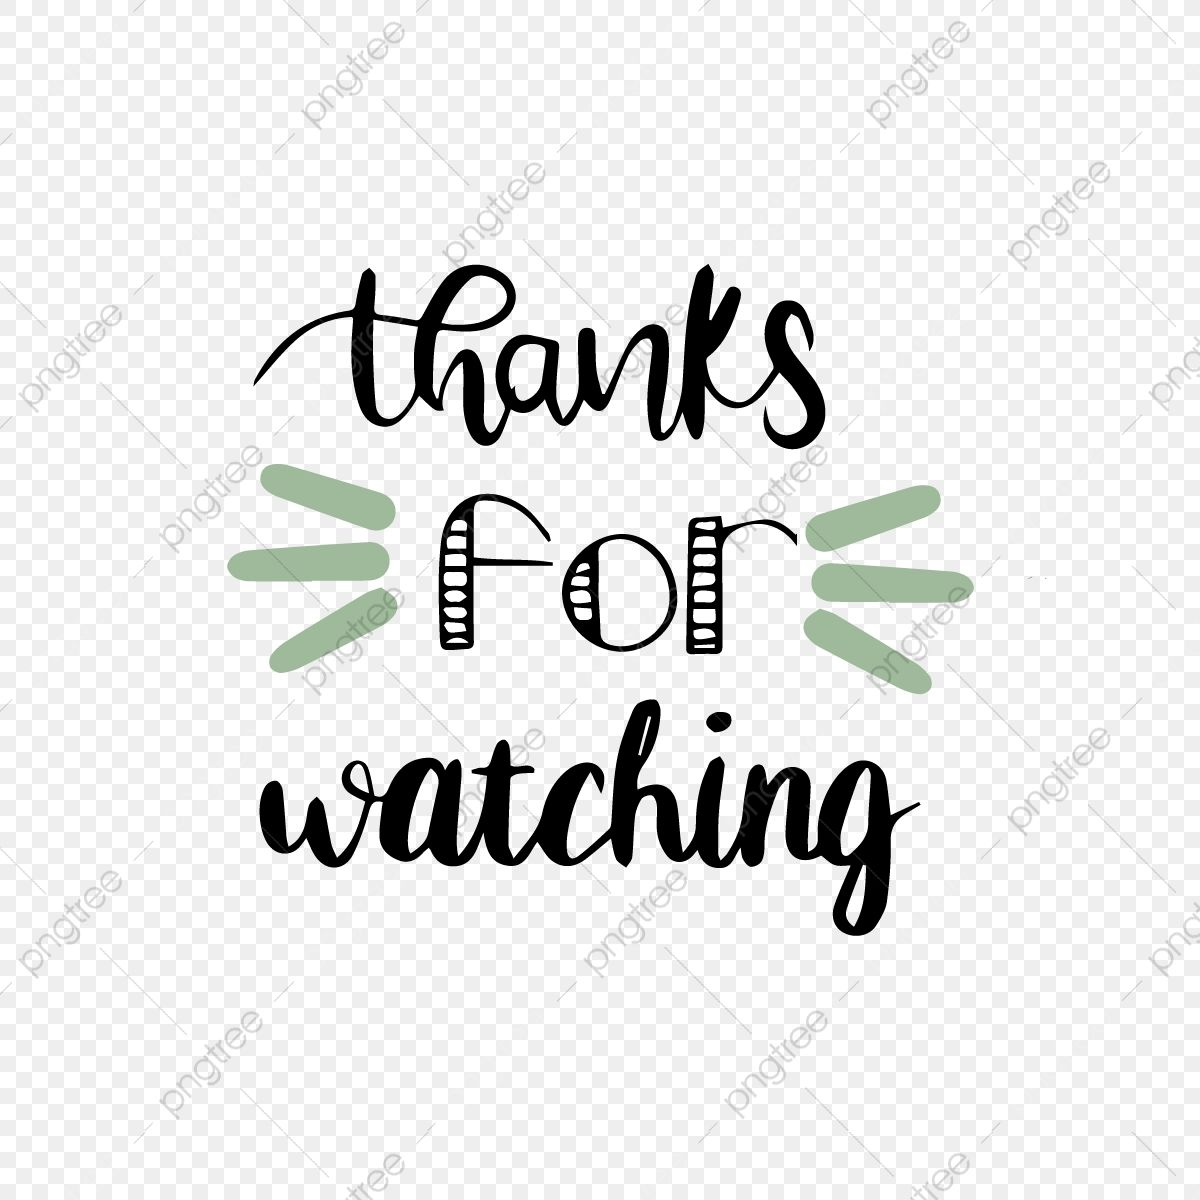 Cartoon Hand Drawn Green Thank You Watch Font Cartoon Hand Painted Thank You Png And Vector With Transparent Background For Free Download How To Draw Hands First Youtube Video Ideas Youtube